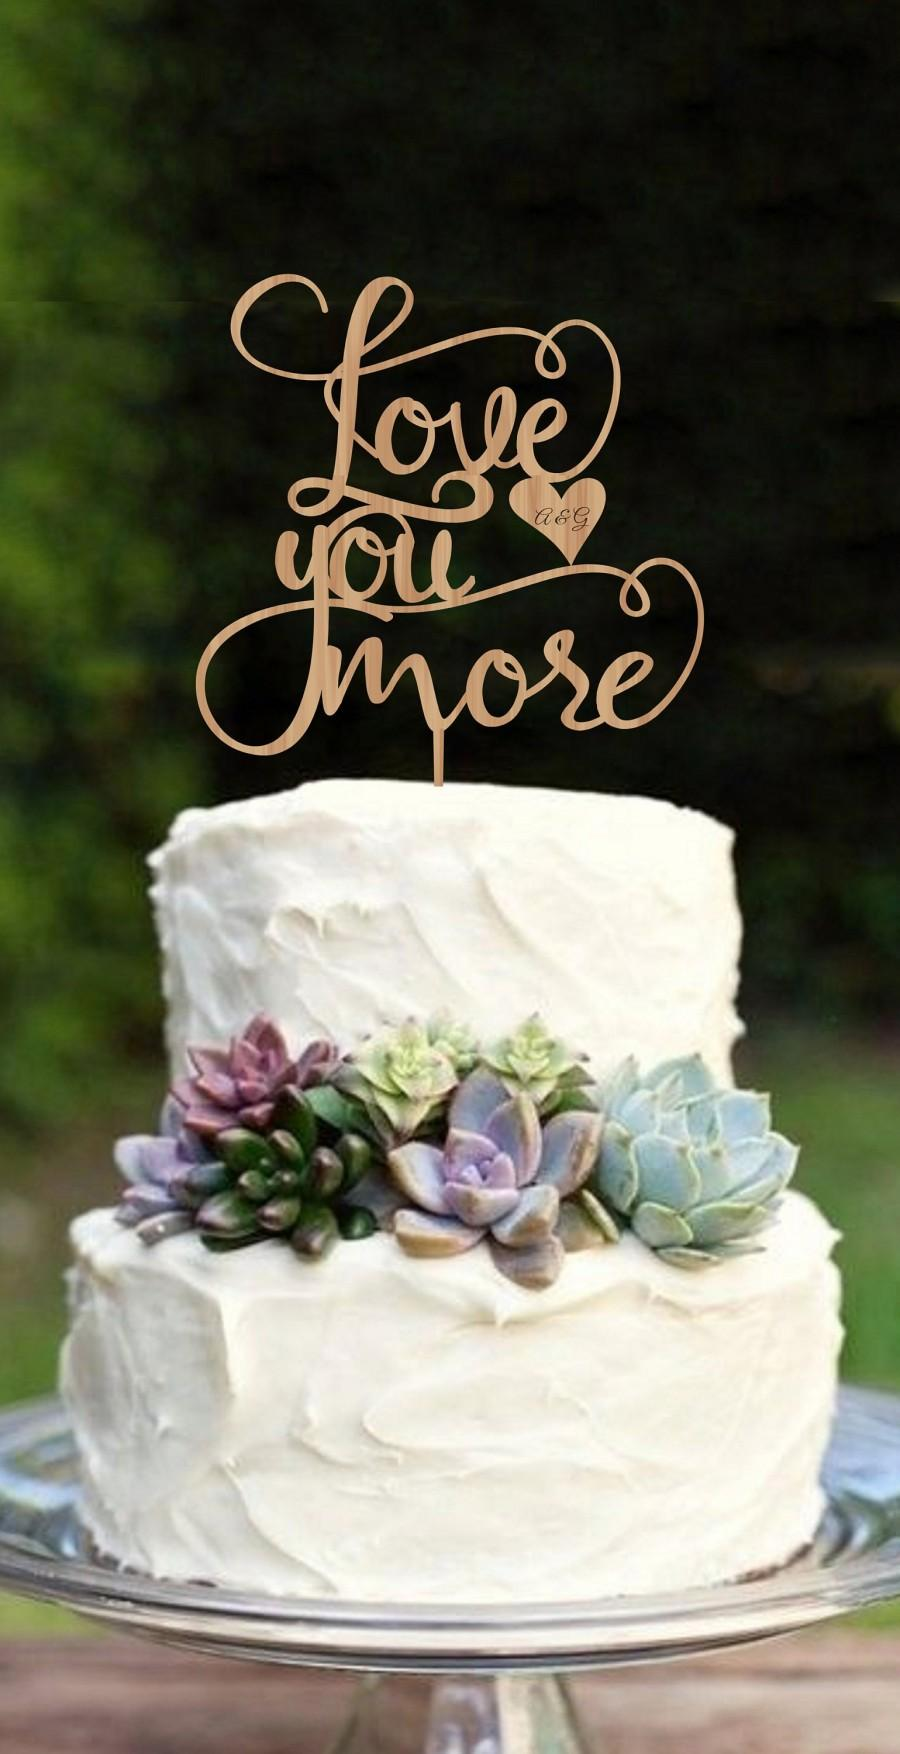 زفاف - Wedding Cake Topper Love you more  Personalized Wood Cake Topper  Golden Silver  Cake Topper Customized Wedding Cake Topper